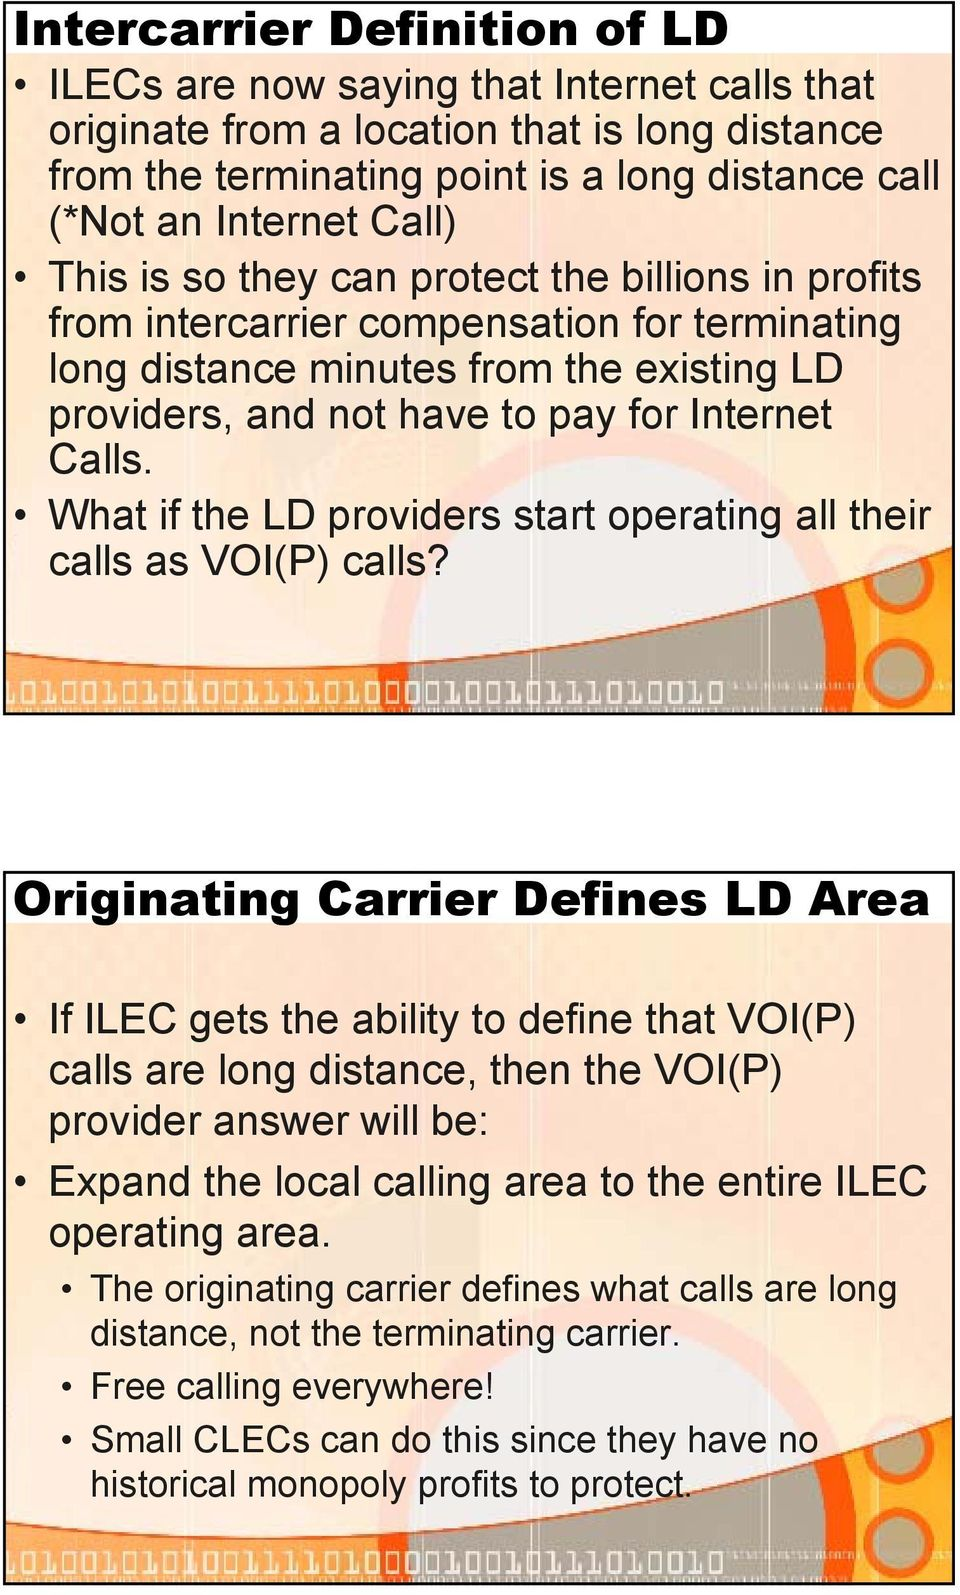 What if the LD providers start operating all their calls as VOI(P) calls?